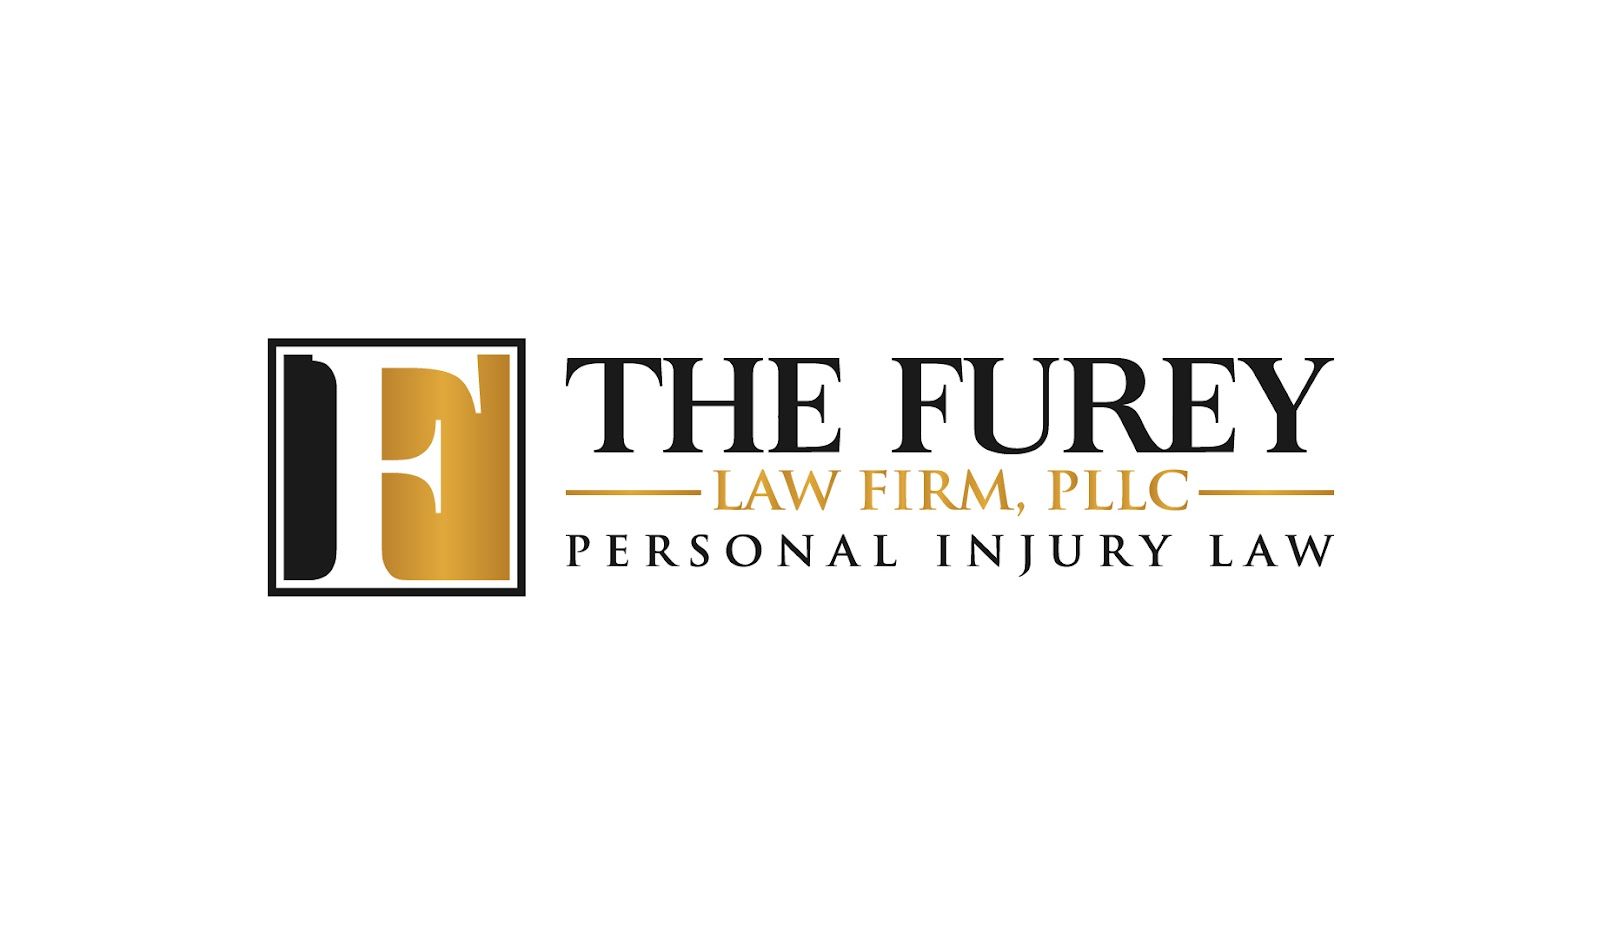 The Furey Law Firm